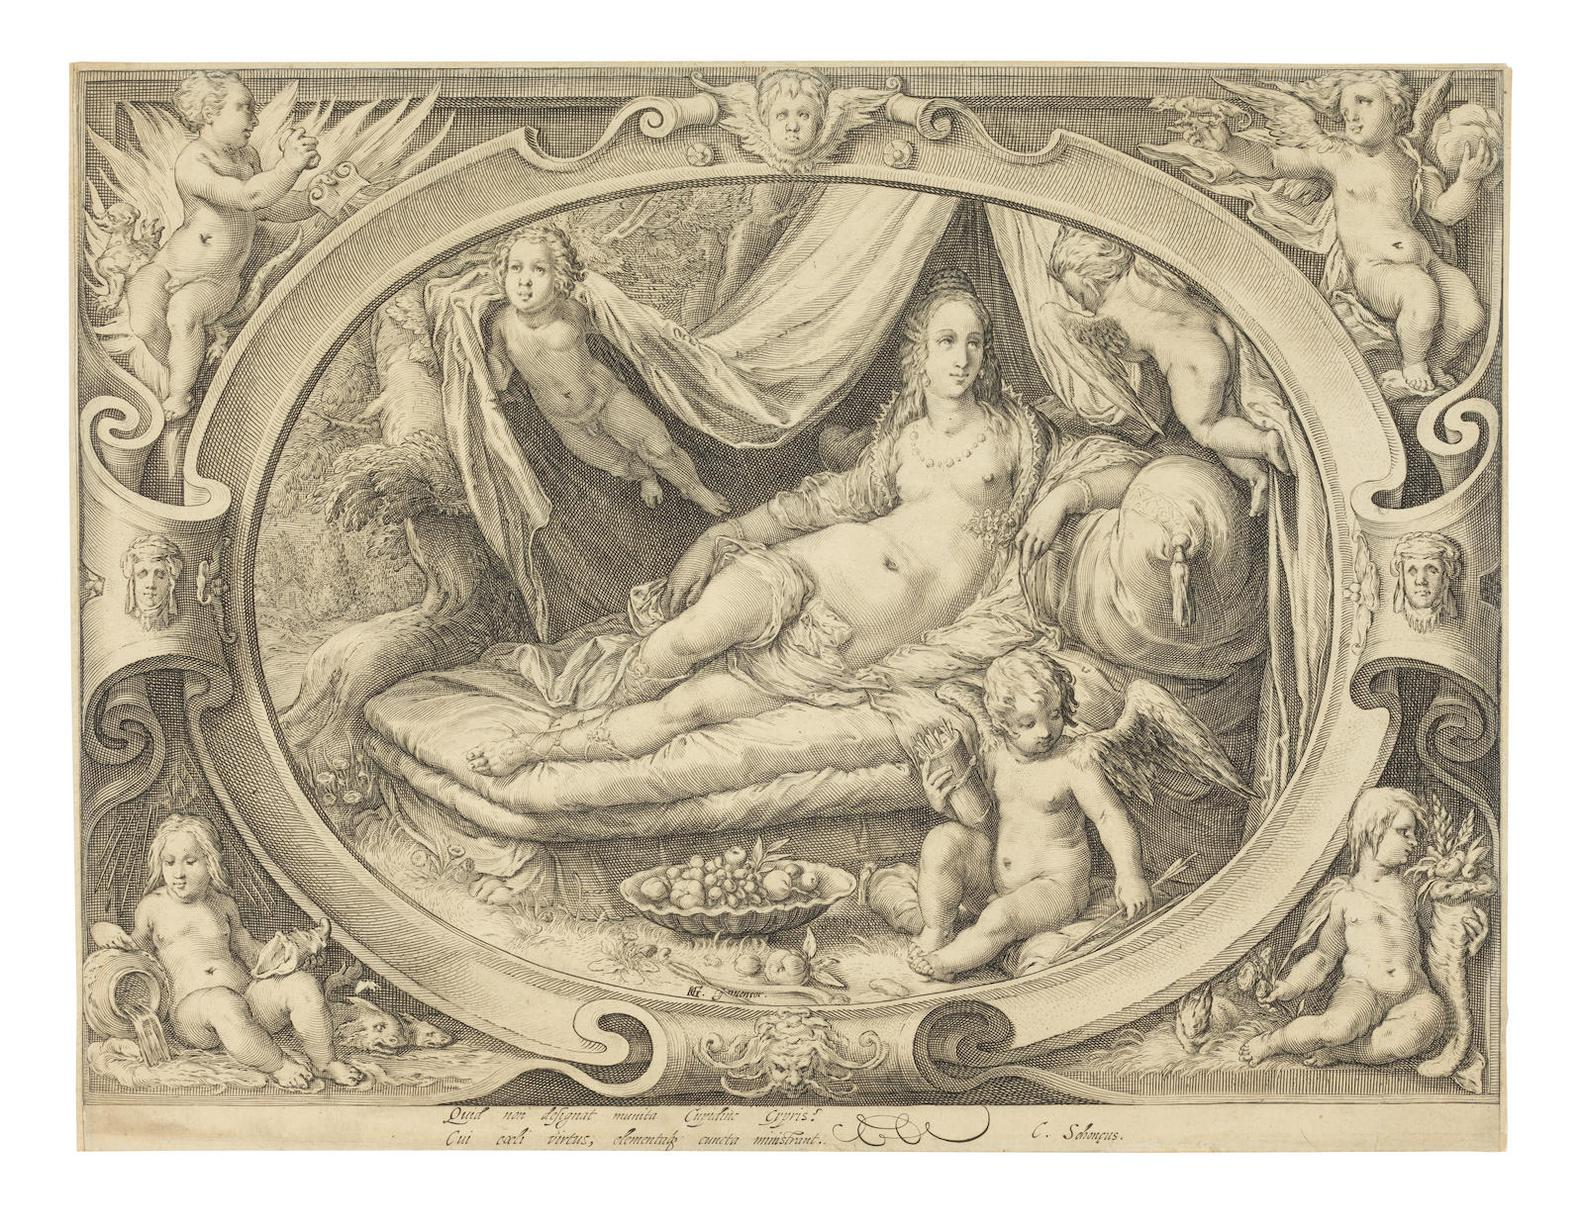 Jan Pietersz Saenredam - Venus With Amor Reclining On A Bed; Hendrick Goltzius - Portrait of Frederic II King of Denmark and Norway (H.188)-